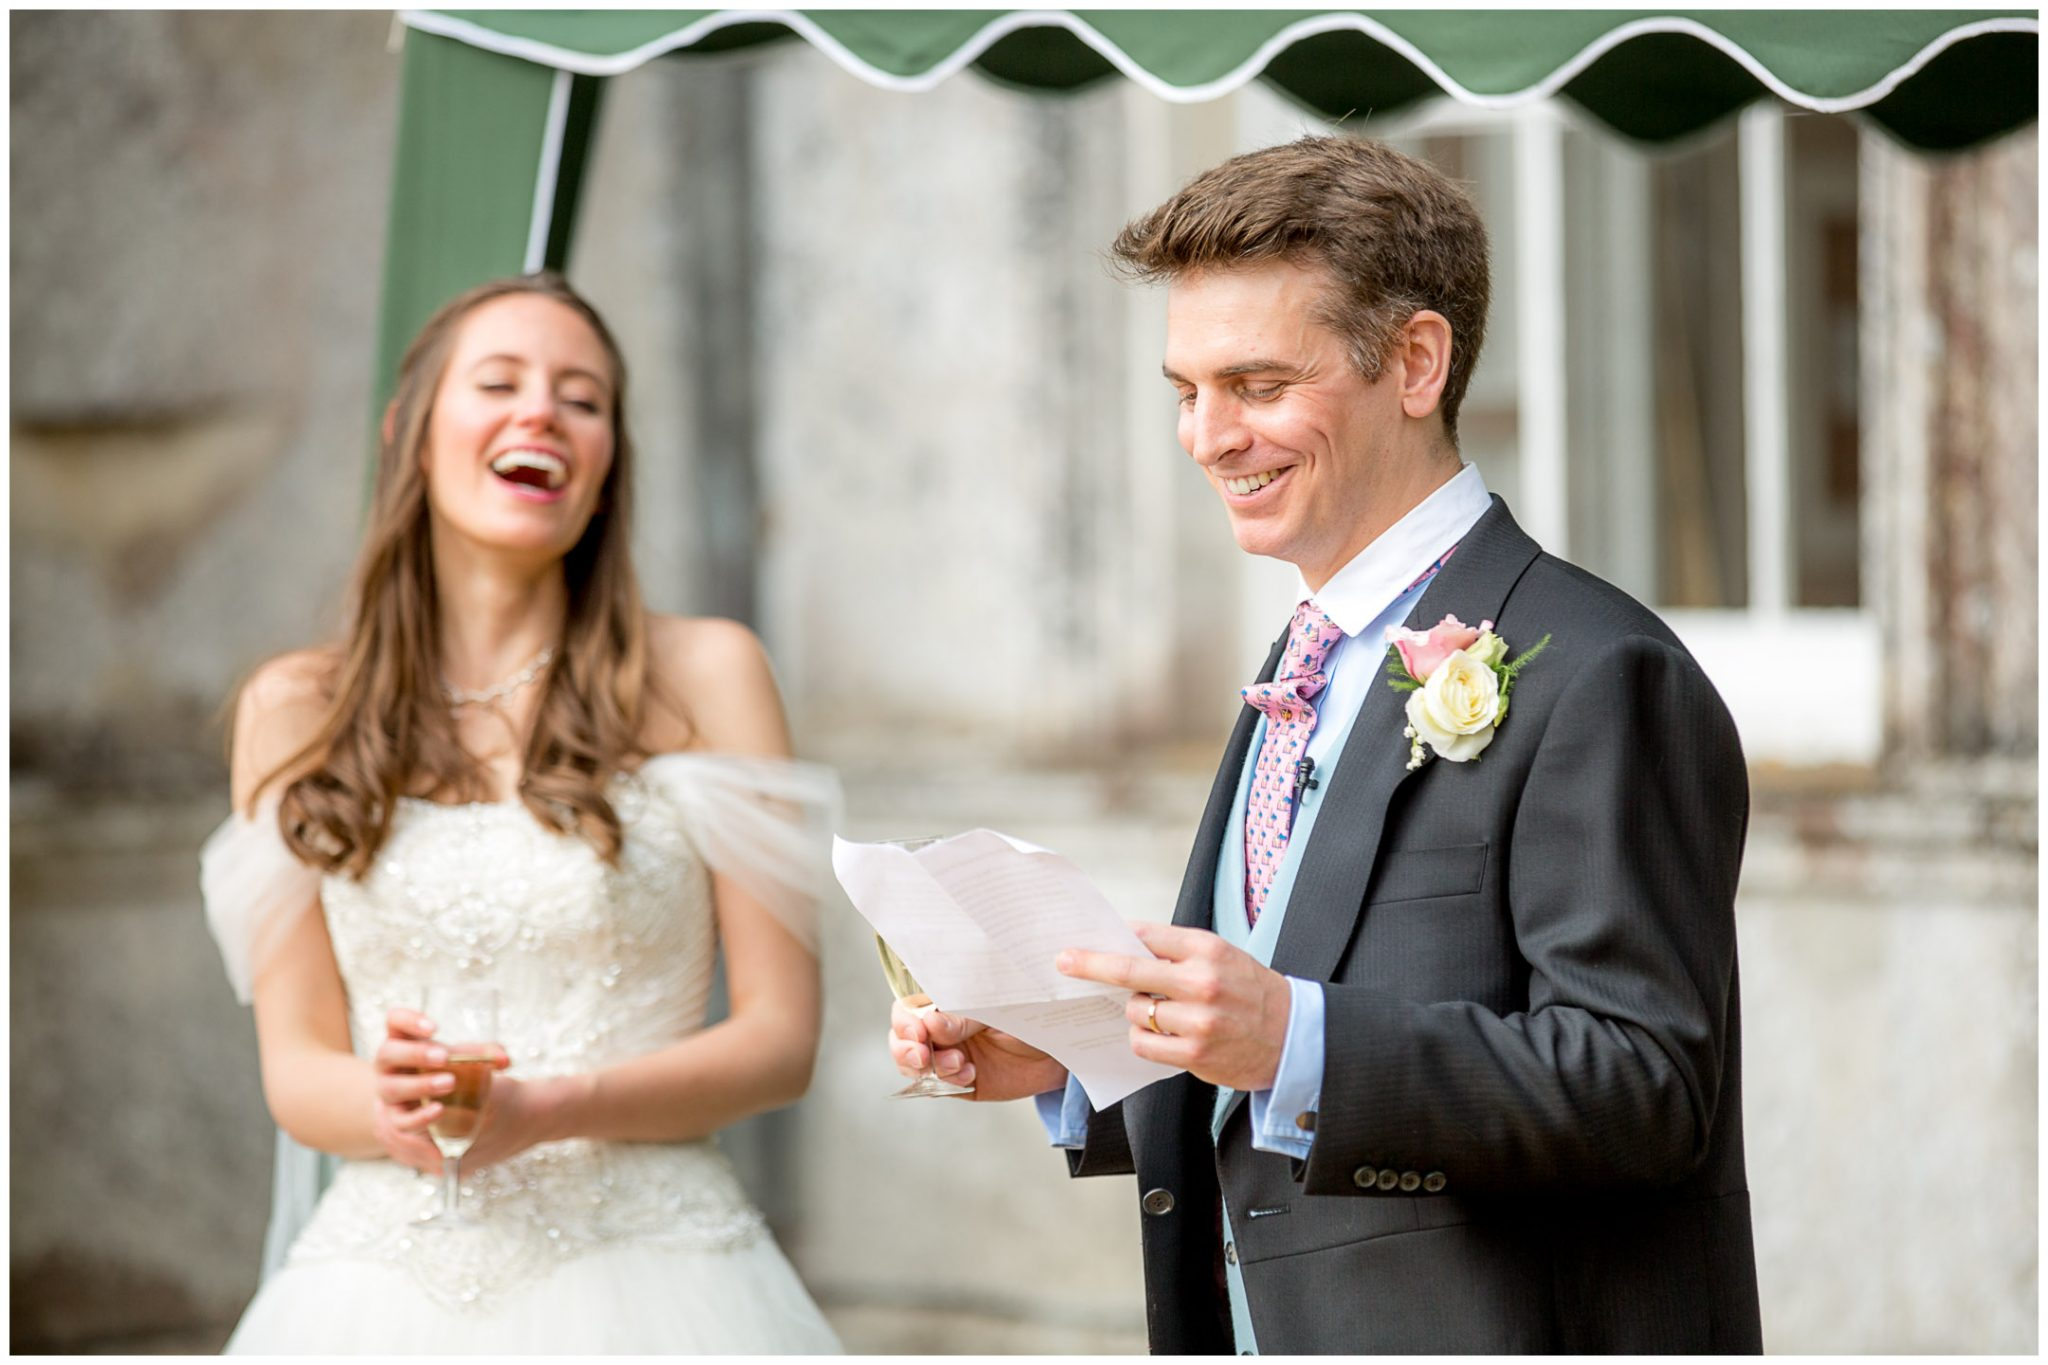 Bride laughs as the groom makes his speech